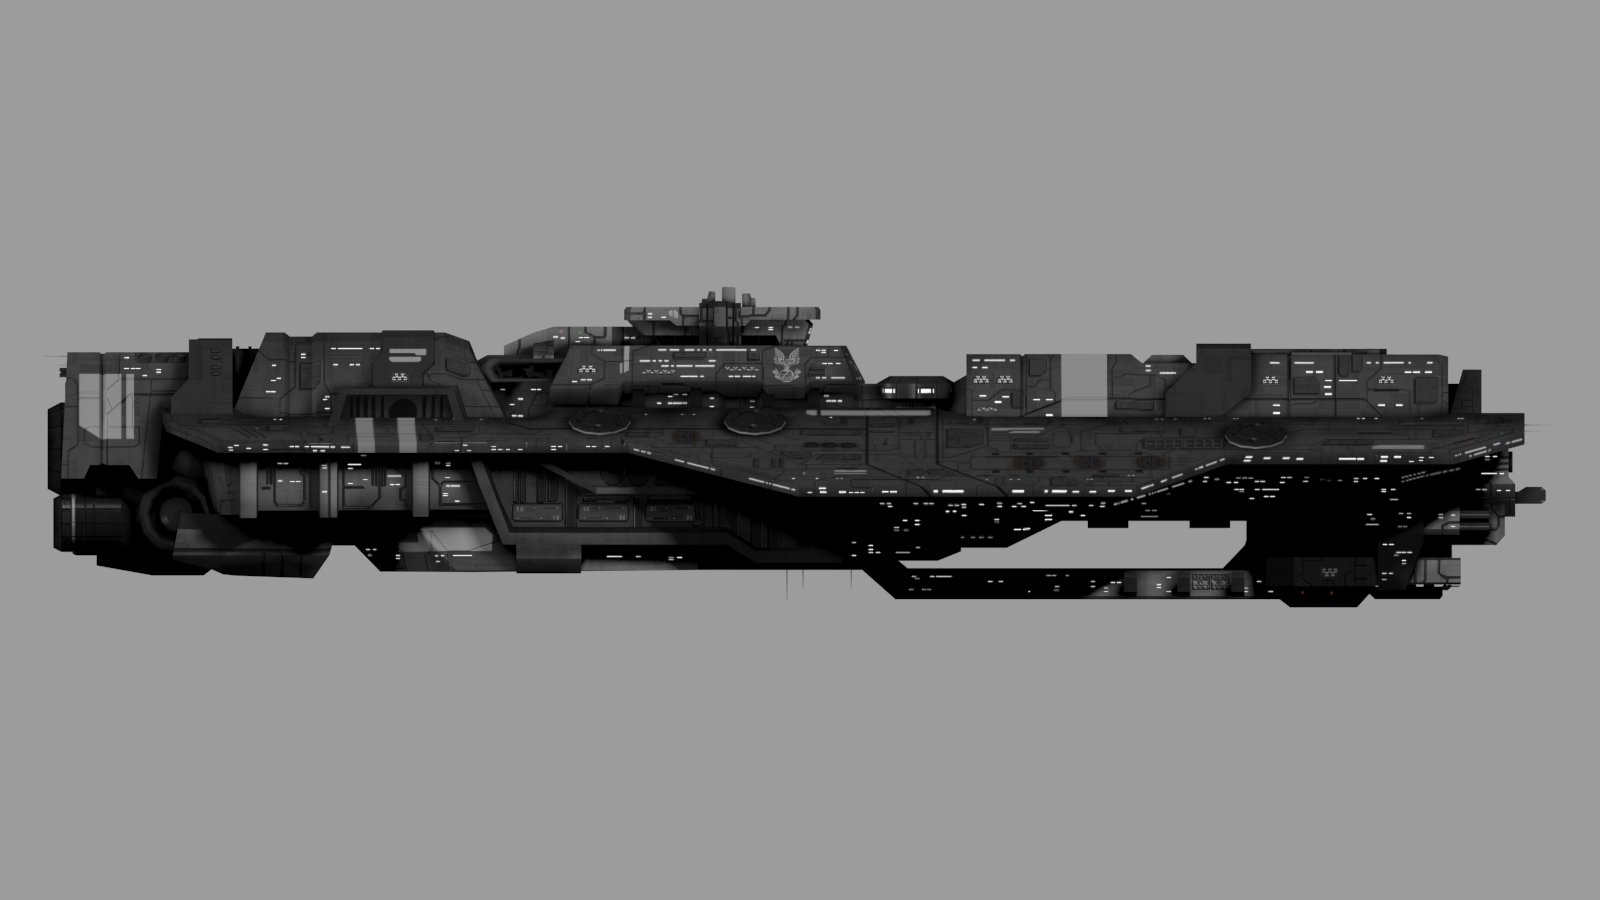 Epoch-class heavy carrier